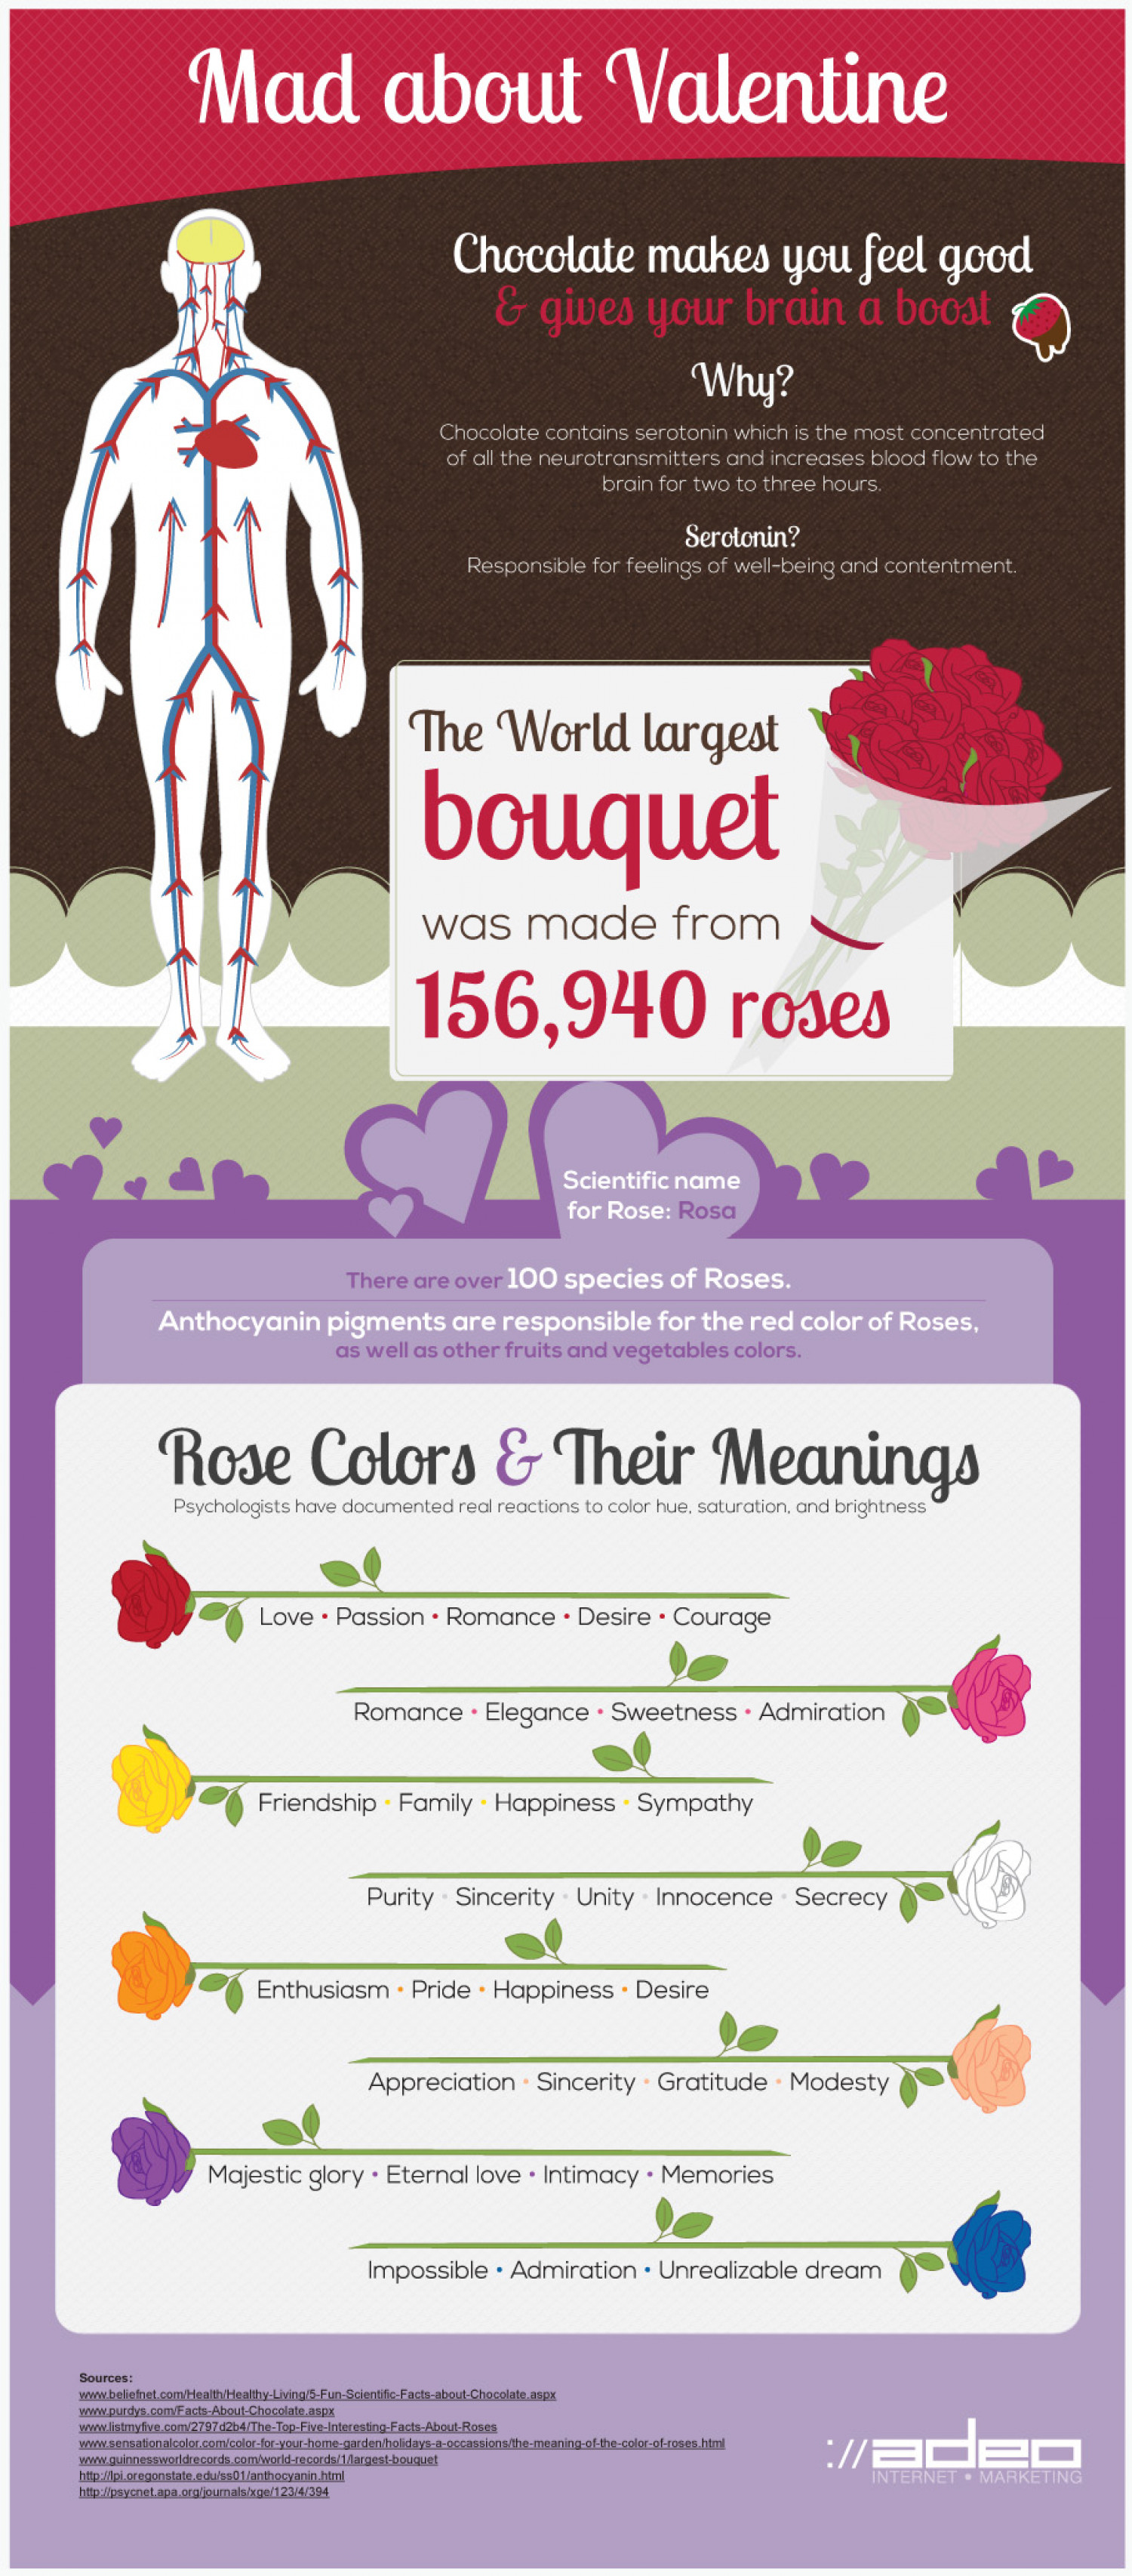 Mad about Valentine Infographic